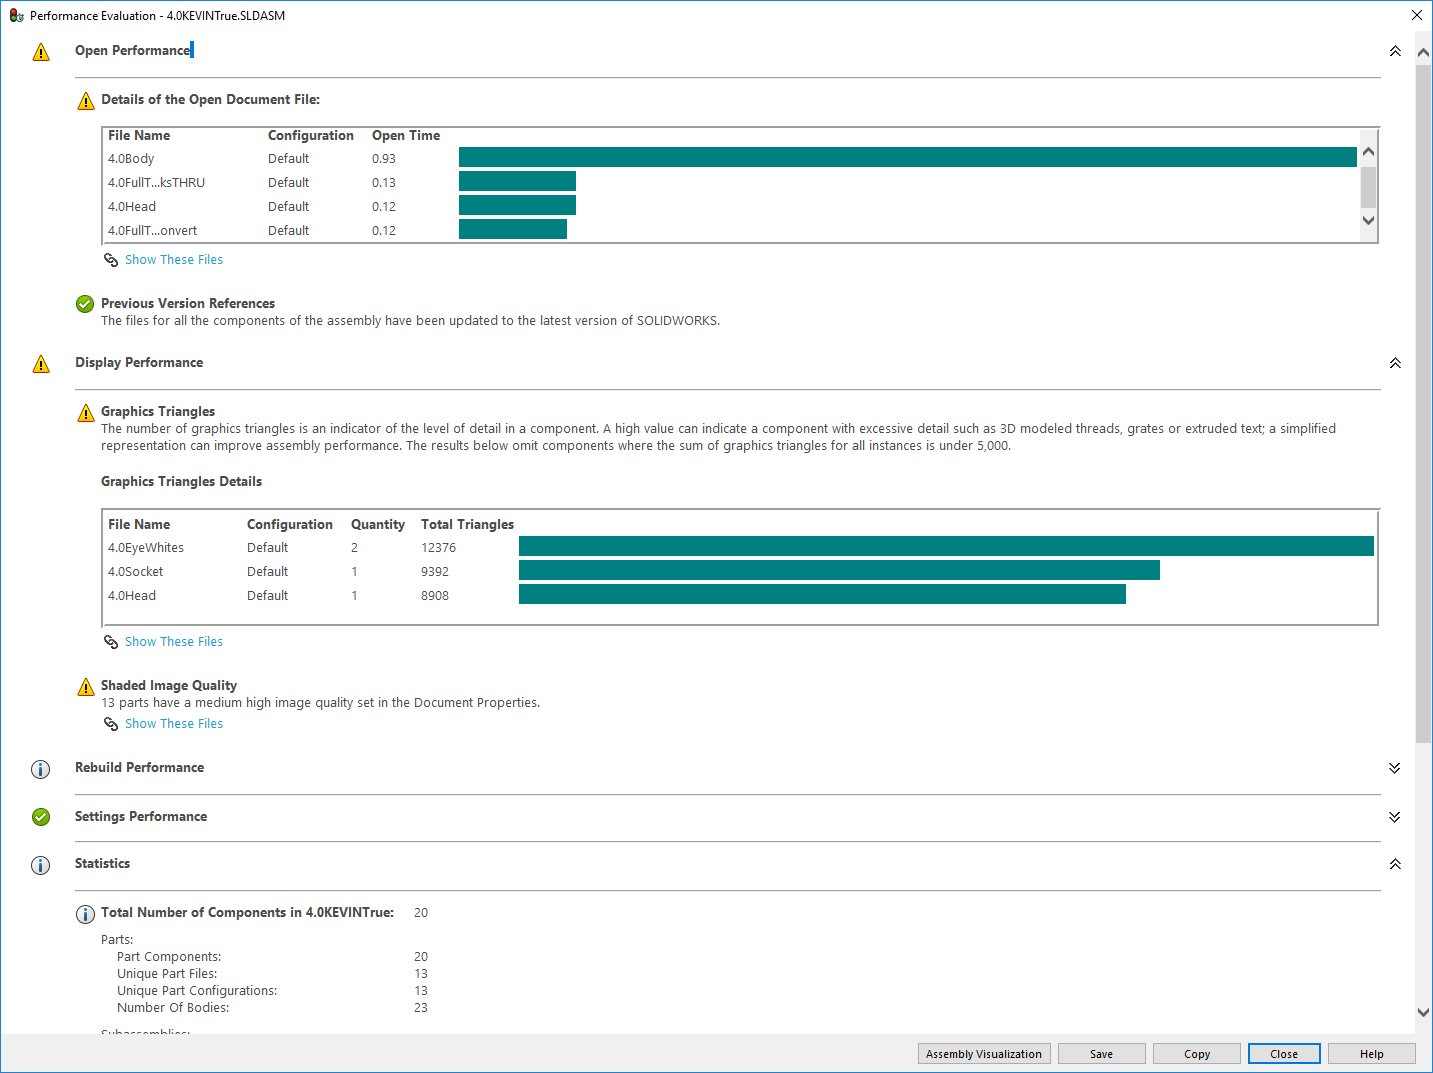 SOLIDWORKS Performance Evaluation tool